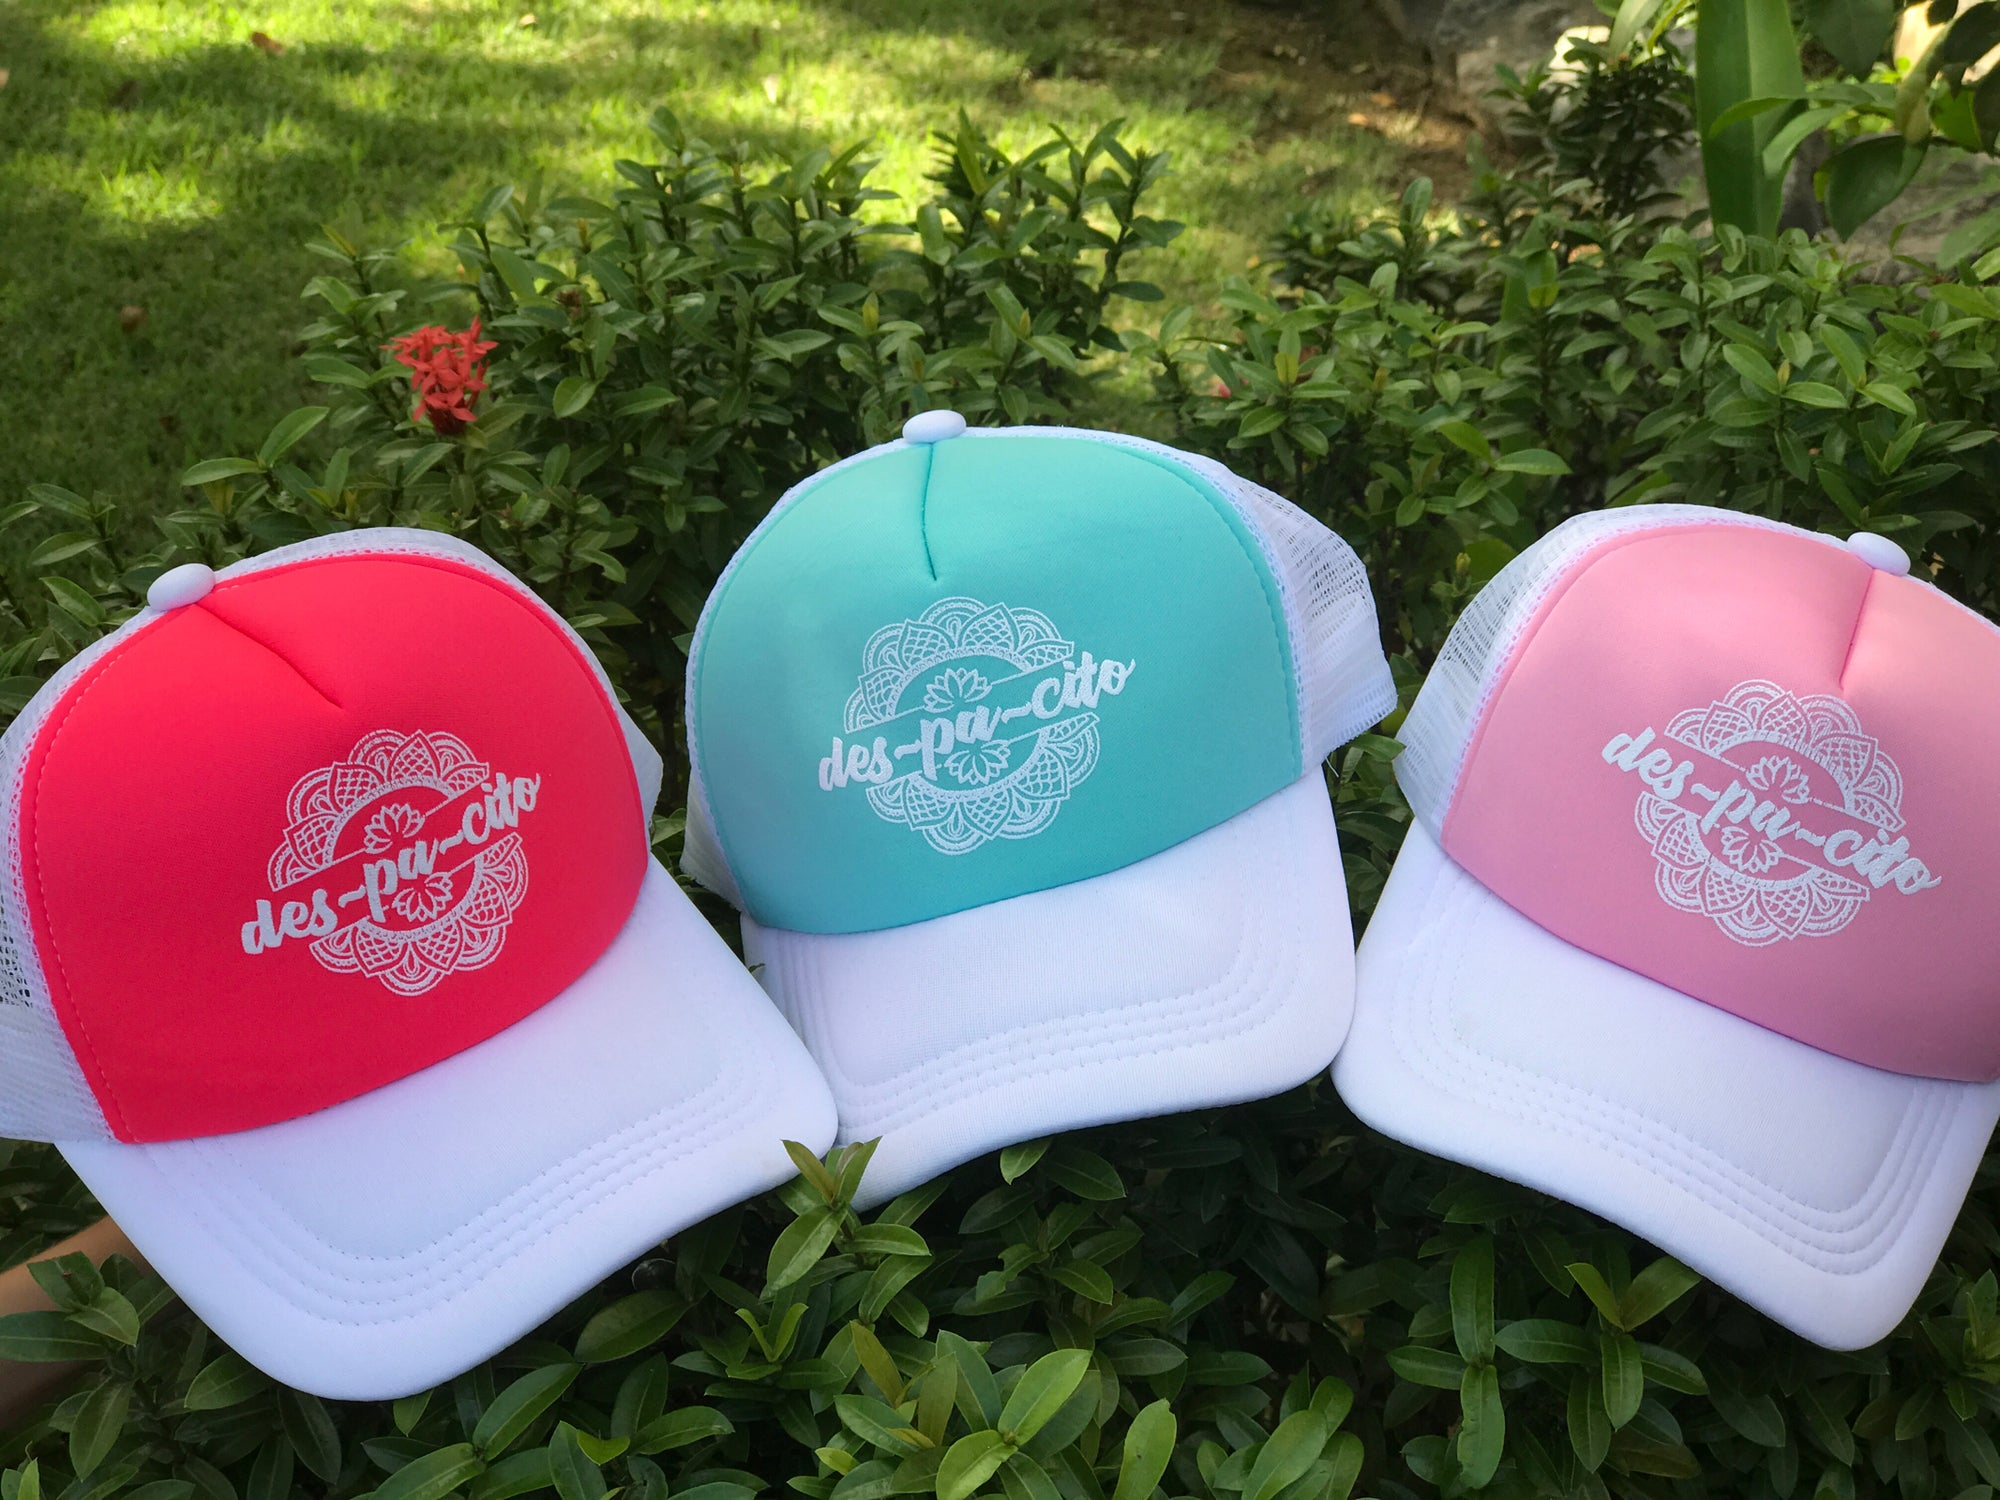 con • sentido   — Despacito Pastel Colors Trucker Hat 5763311f6e74